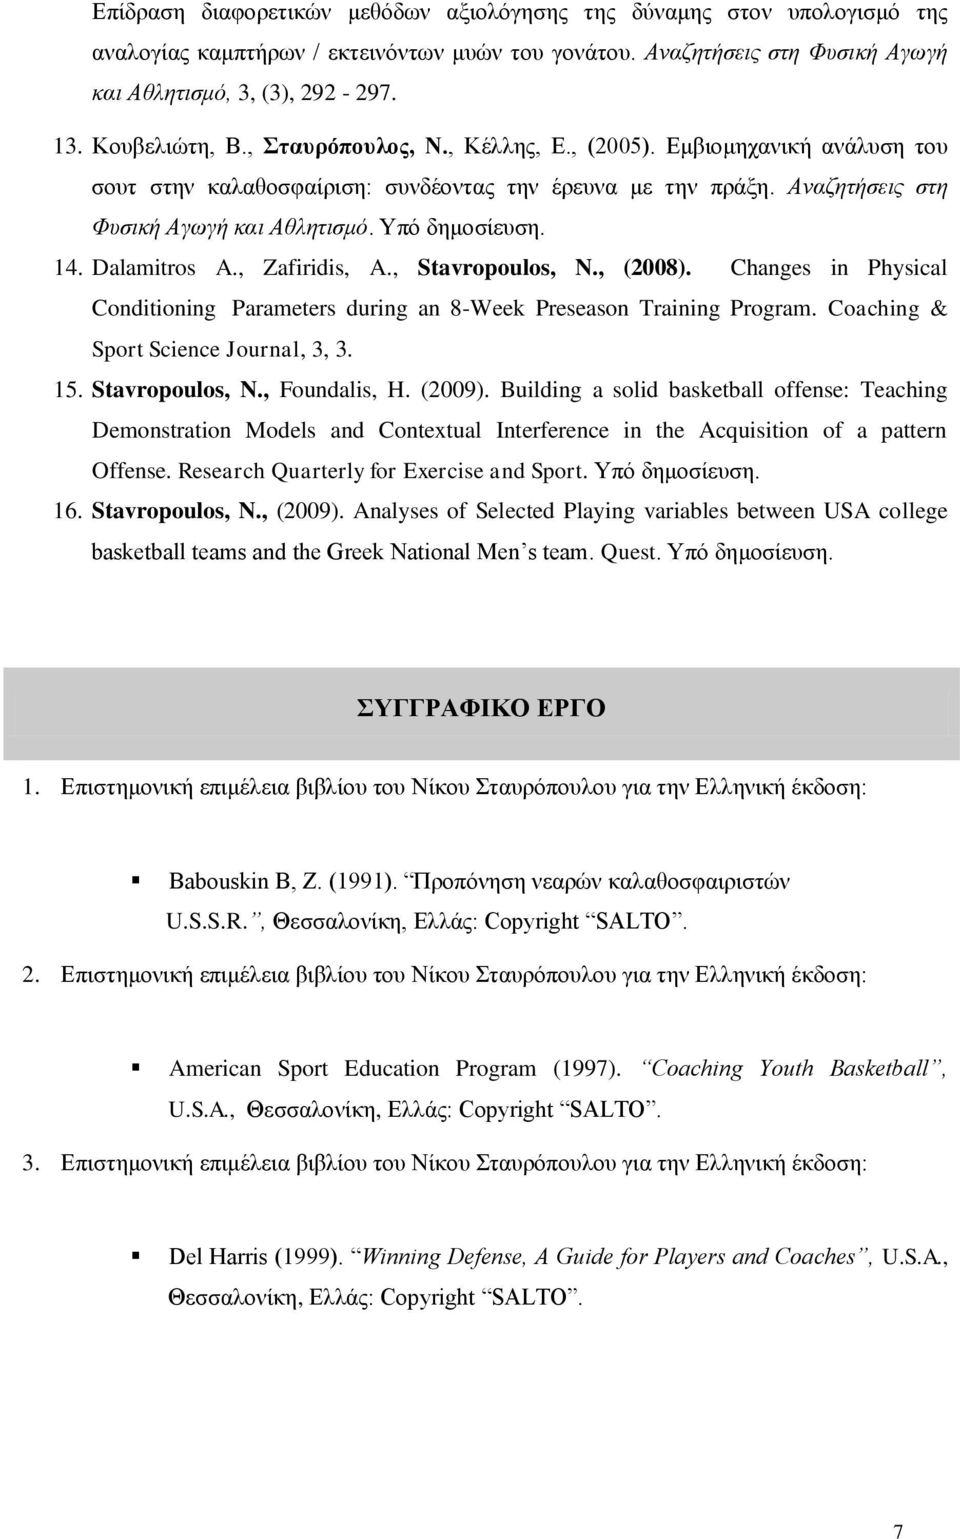 14. Dalamitros A., Zafiridis, A., Stavropoulos, N., (2008). Changes in Physical Conditioning Parameters during an 8-Week Preseason Training Program. Coaching & Sport Science Journal, 3, 3. 15.